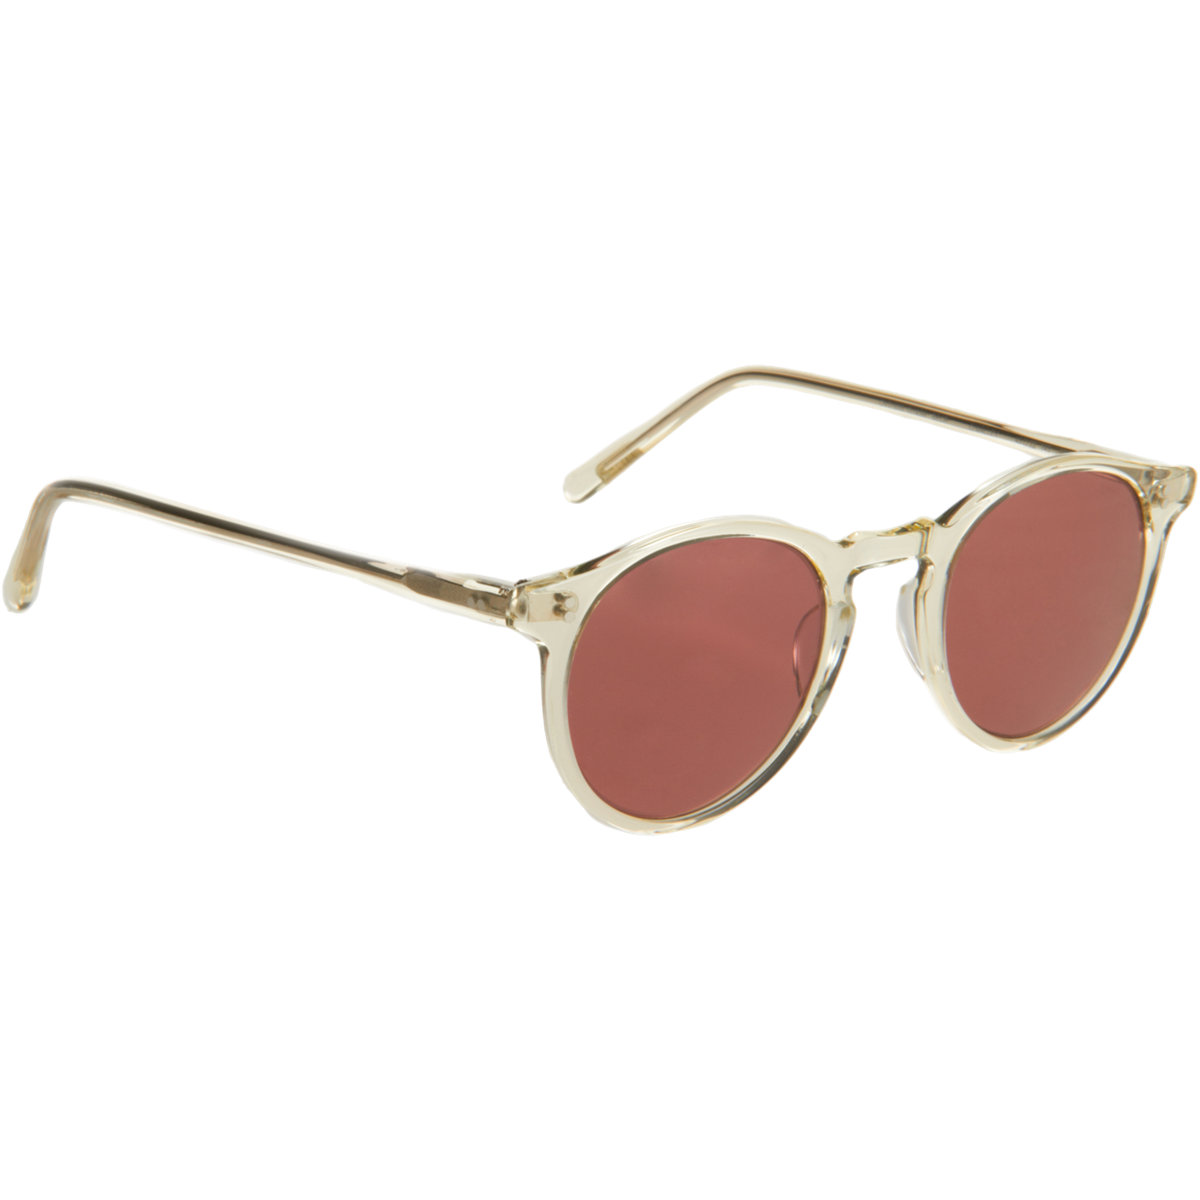 Oliver peoples o'malley 45 at barneys.com